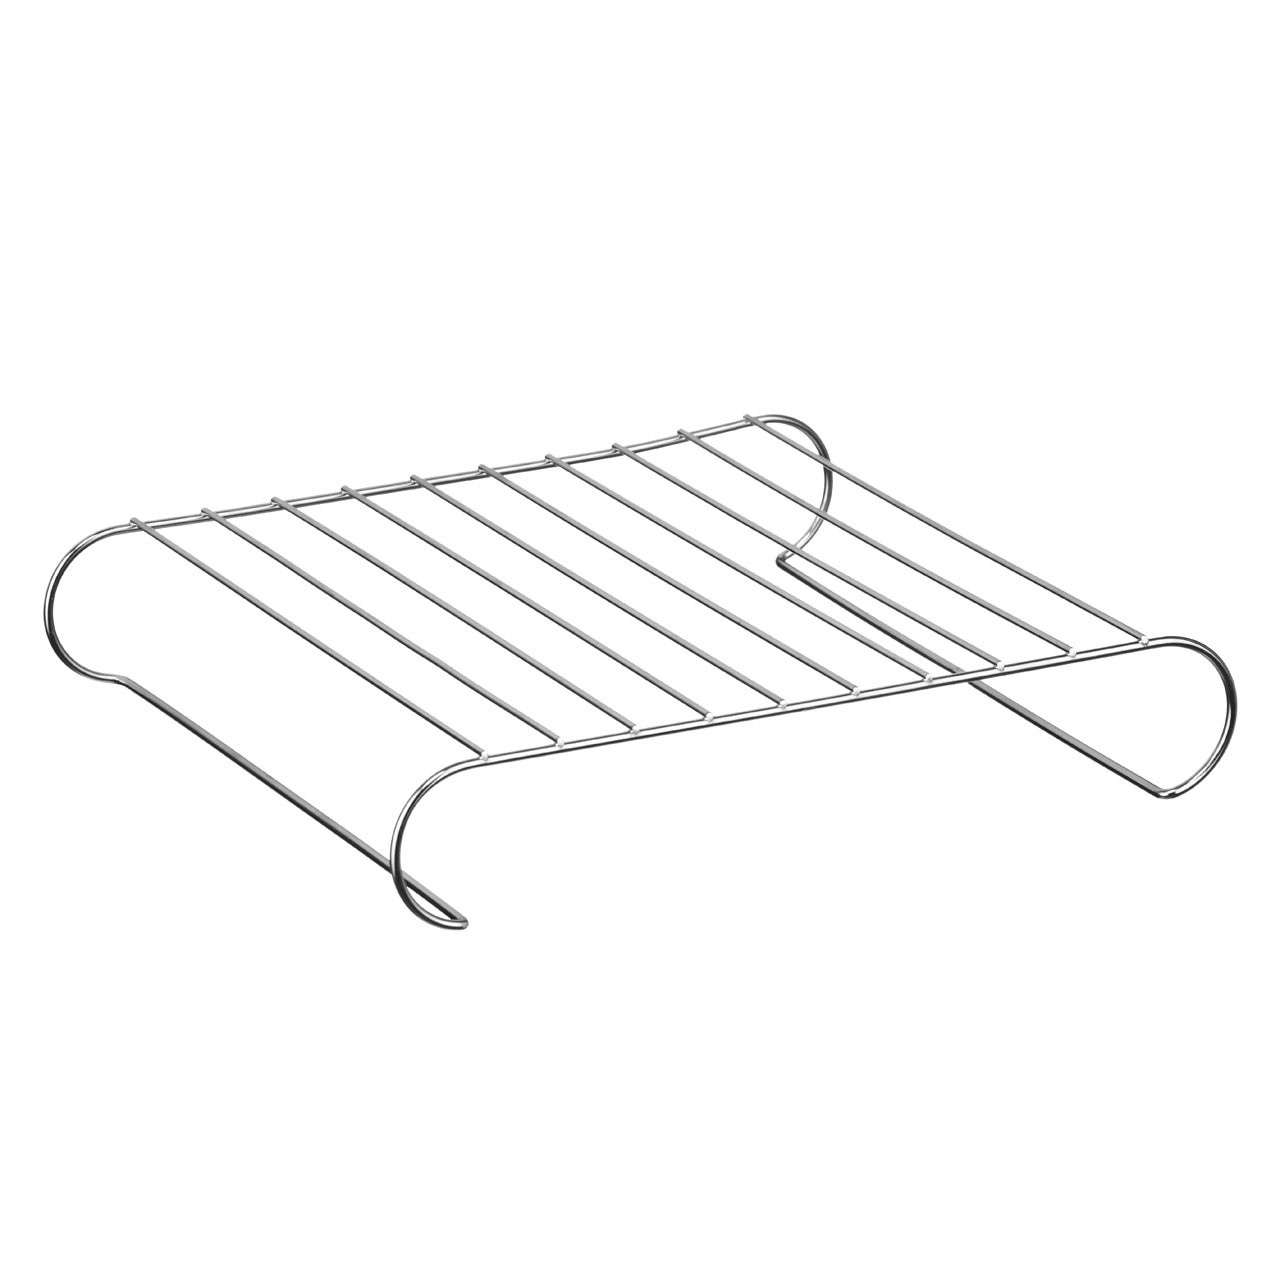 Prime Furnishing Oven Rack And Cooling Rack, Stainless Steel